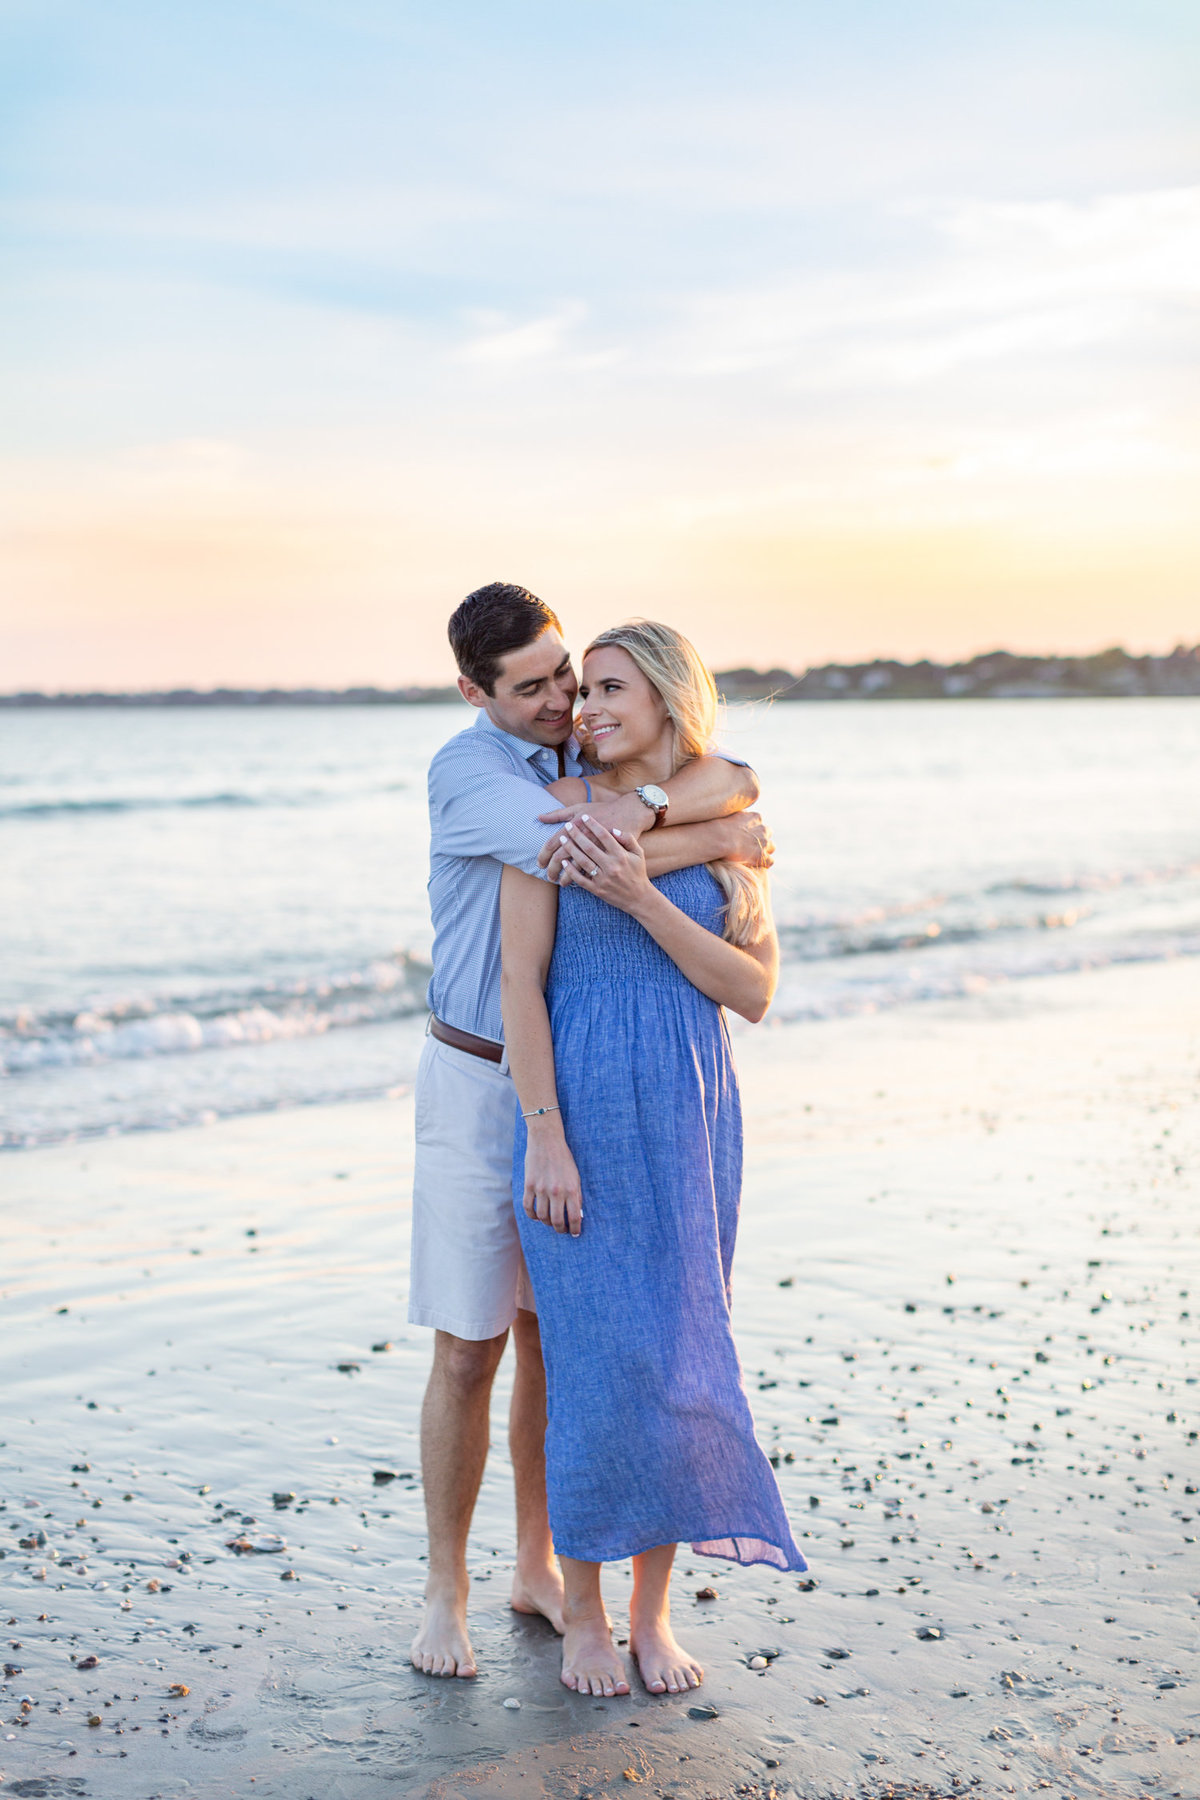 Laura-Klacik-Photography-Engagement-Photos-85